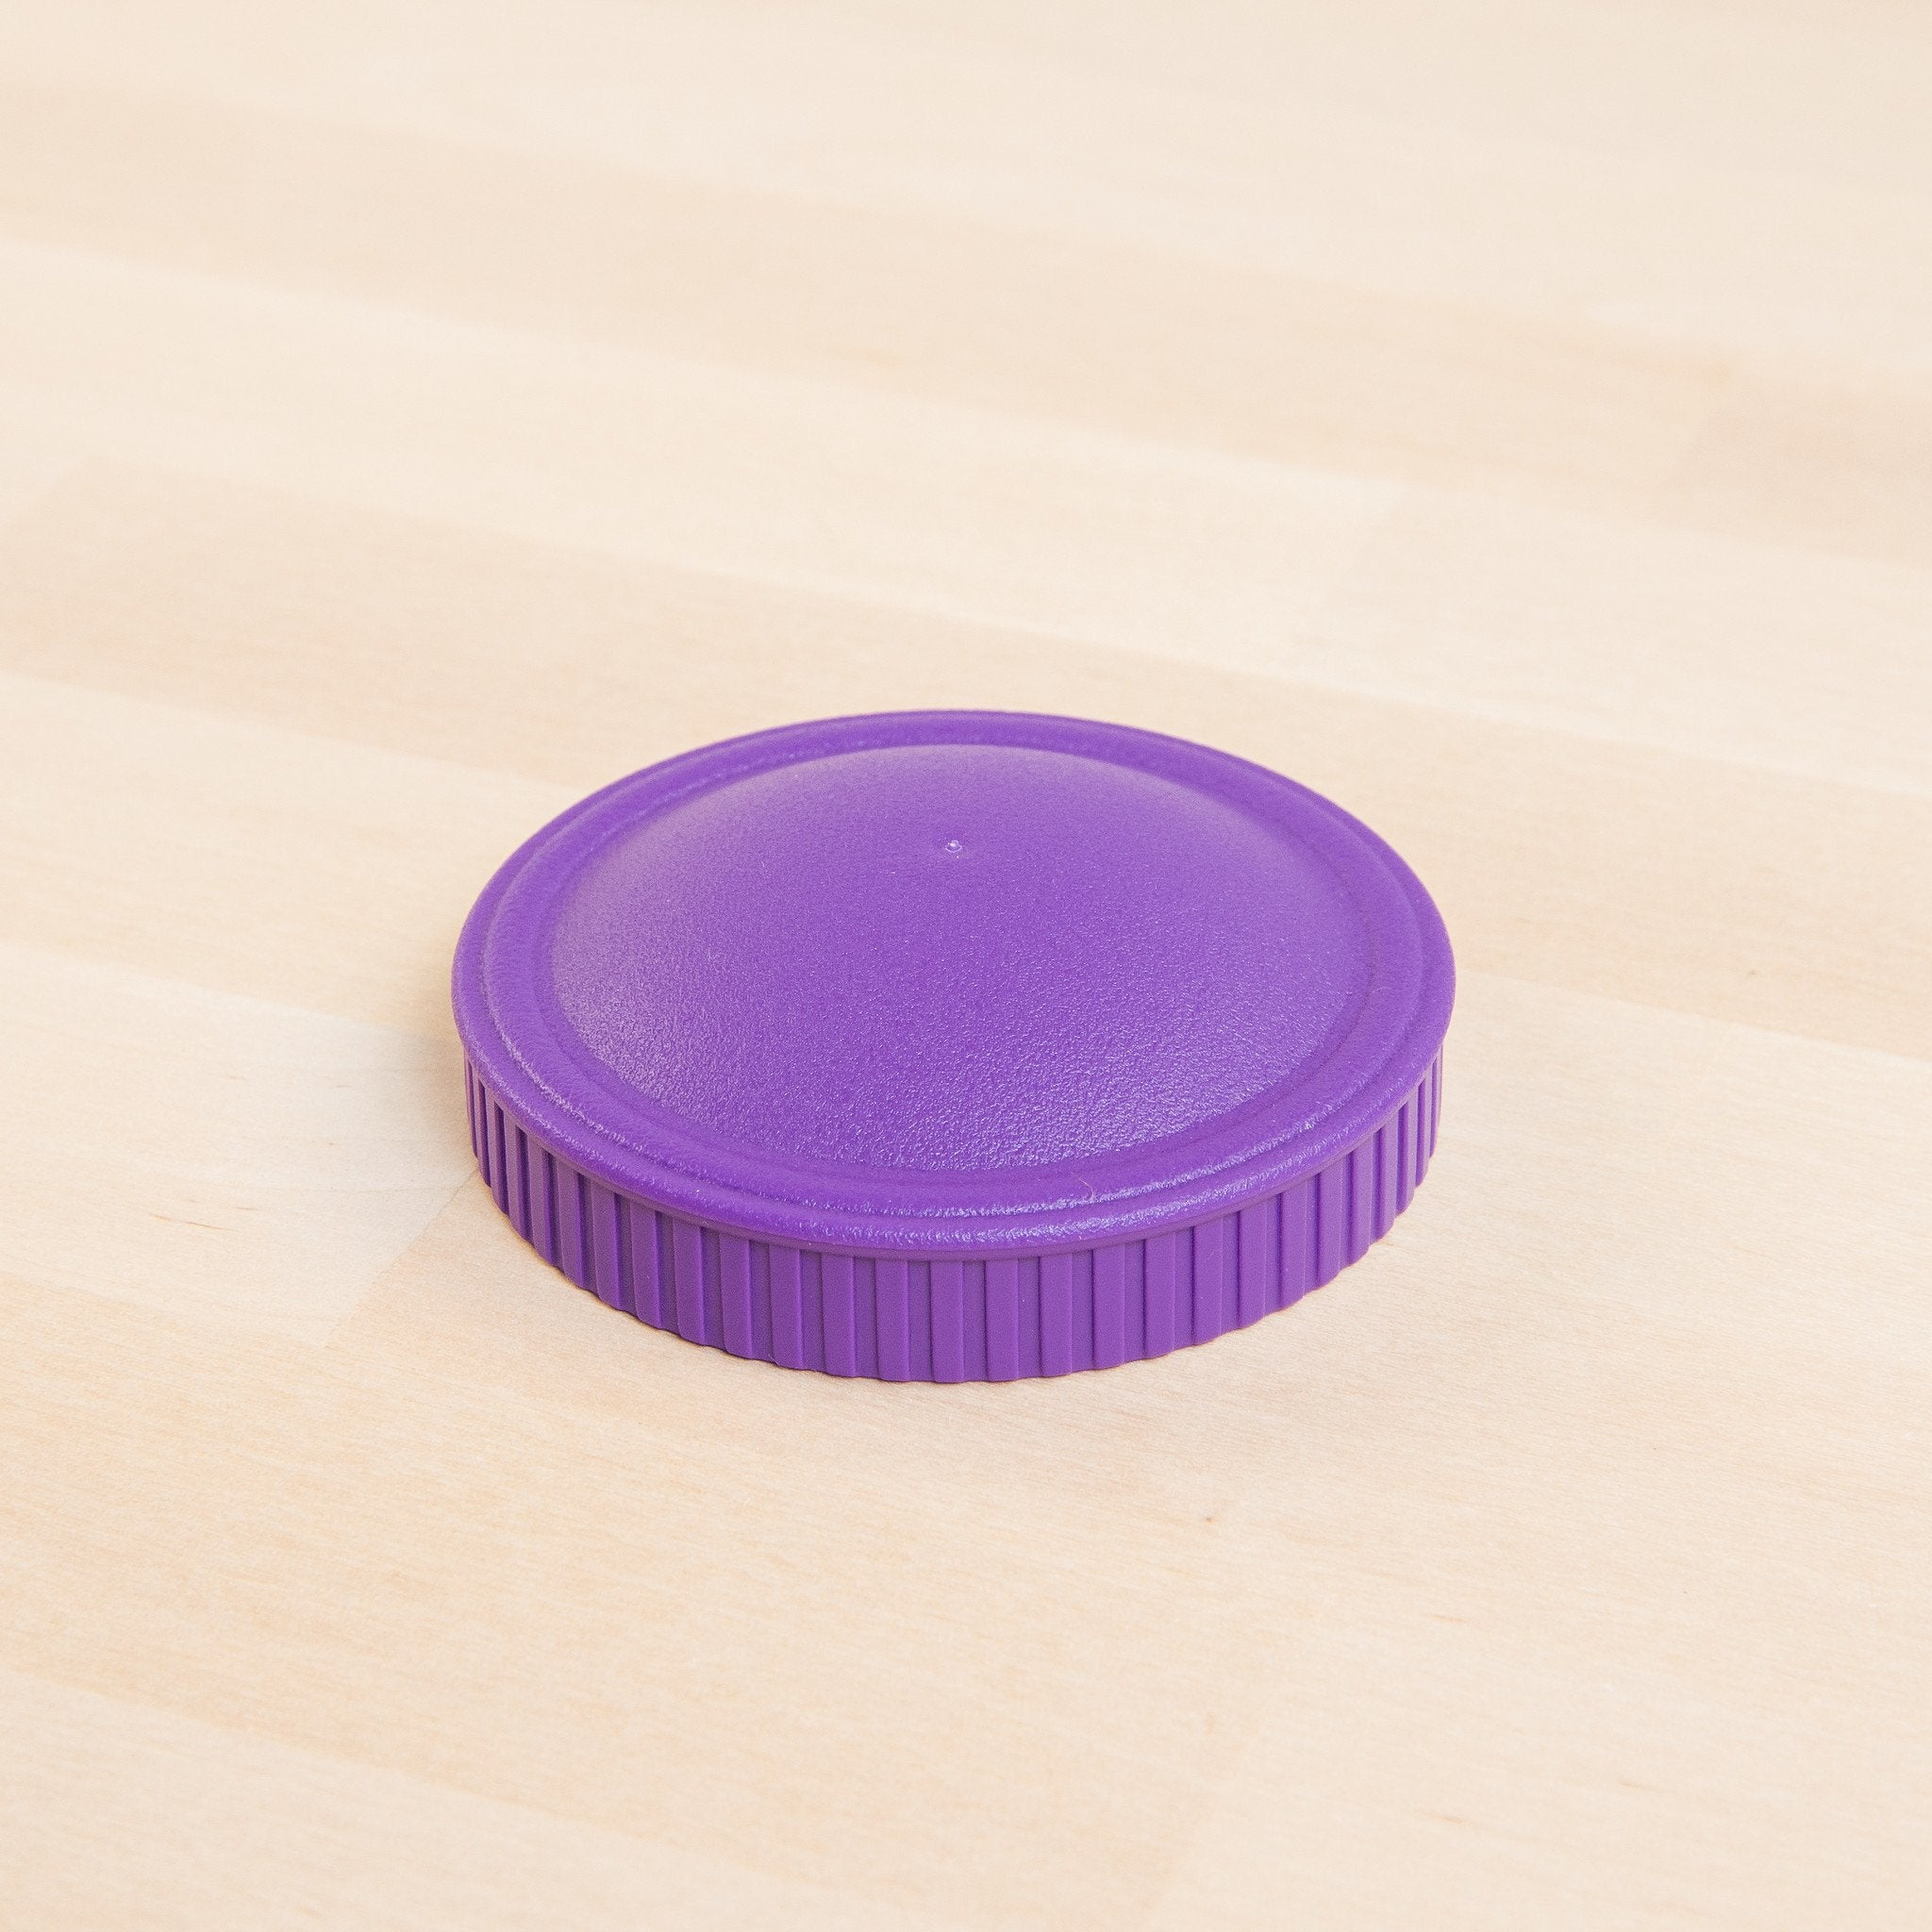 Replay Spare Snack Stack Lids Replay Dinnerware Amethyst at Little Earth Nest Eco Shop